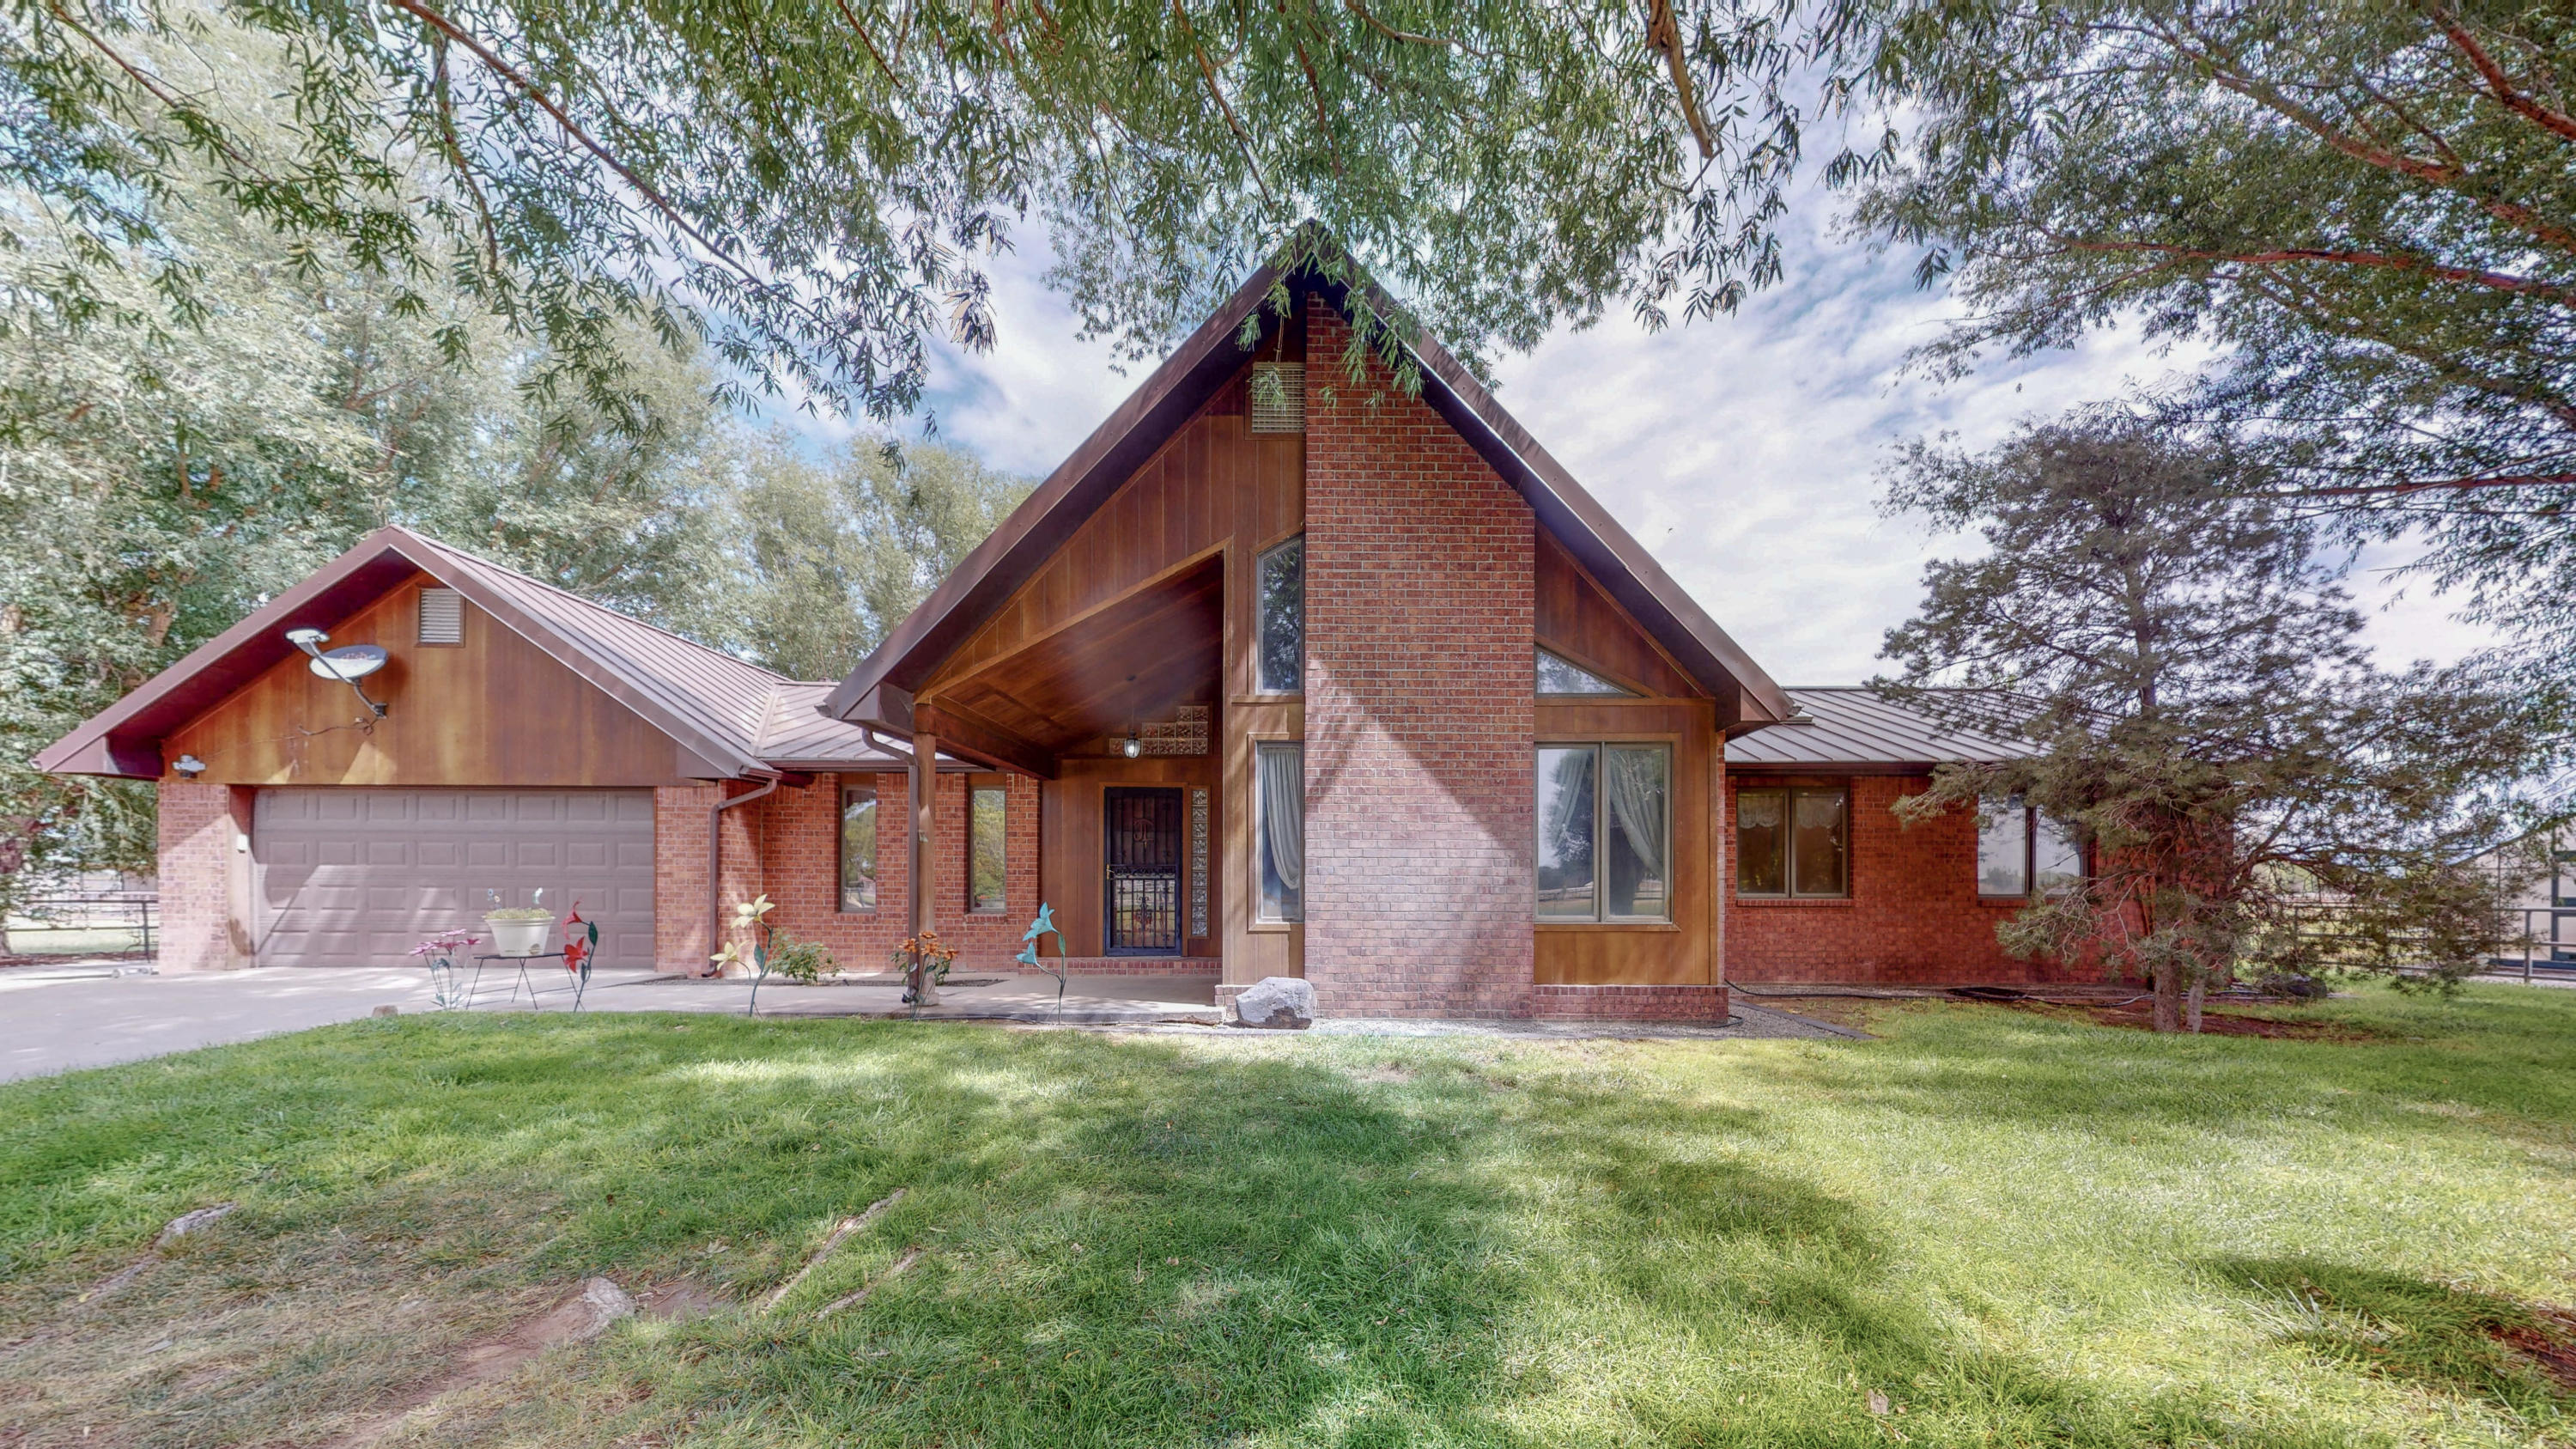 This amazing and completely pipe fenced property has 6.1 acres of country living located in the los Chavez area, with easy/quick access to I25. The house is just over 1900 square ft, with great amenities and updates! Step out the back door and enjoy the shaded patio, and the in ground pool with a beach entrance! Walk around the side of the house and you will find a lovely custom green house, just perfect for the home gardener! Load up your horses and bring them too! There is plenty of room in the five stall barn to house your horses, with the ability to open 2 stalls into a large foaling stall, there is also a larger stud stall and three runs outside the barn. This property also comes with an equipment shed, a large hay barn w/wood floor, a shop, and a shed row barn. A must see!!!